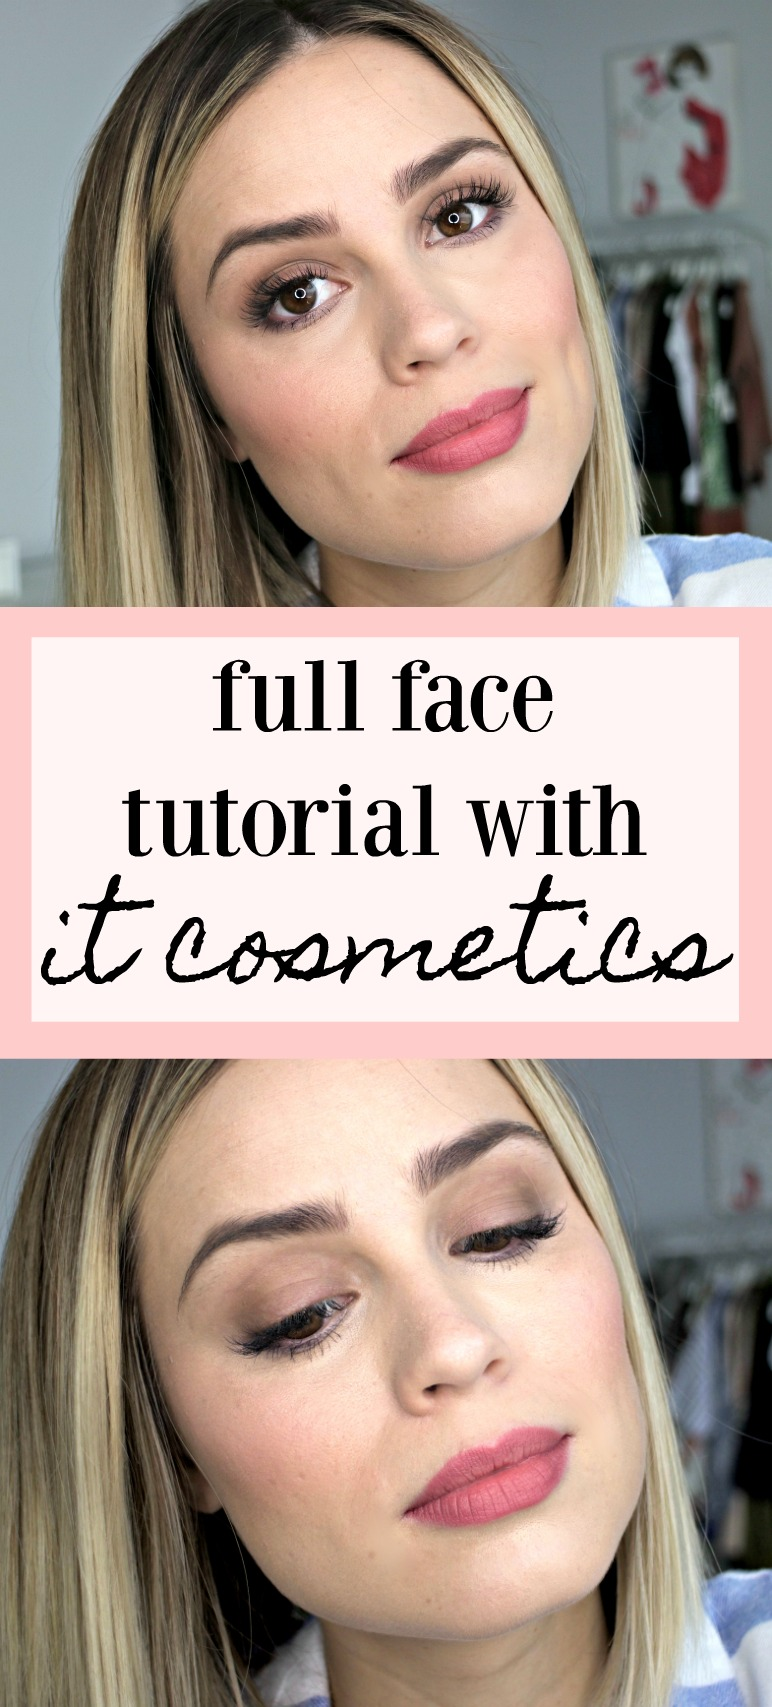 Full Face Makeup Tutorial with it cosmetics by Houston beauty blogger Uptown with Elly Brown